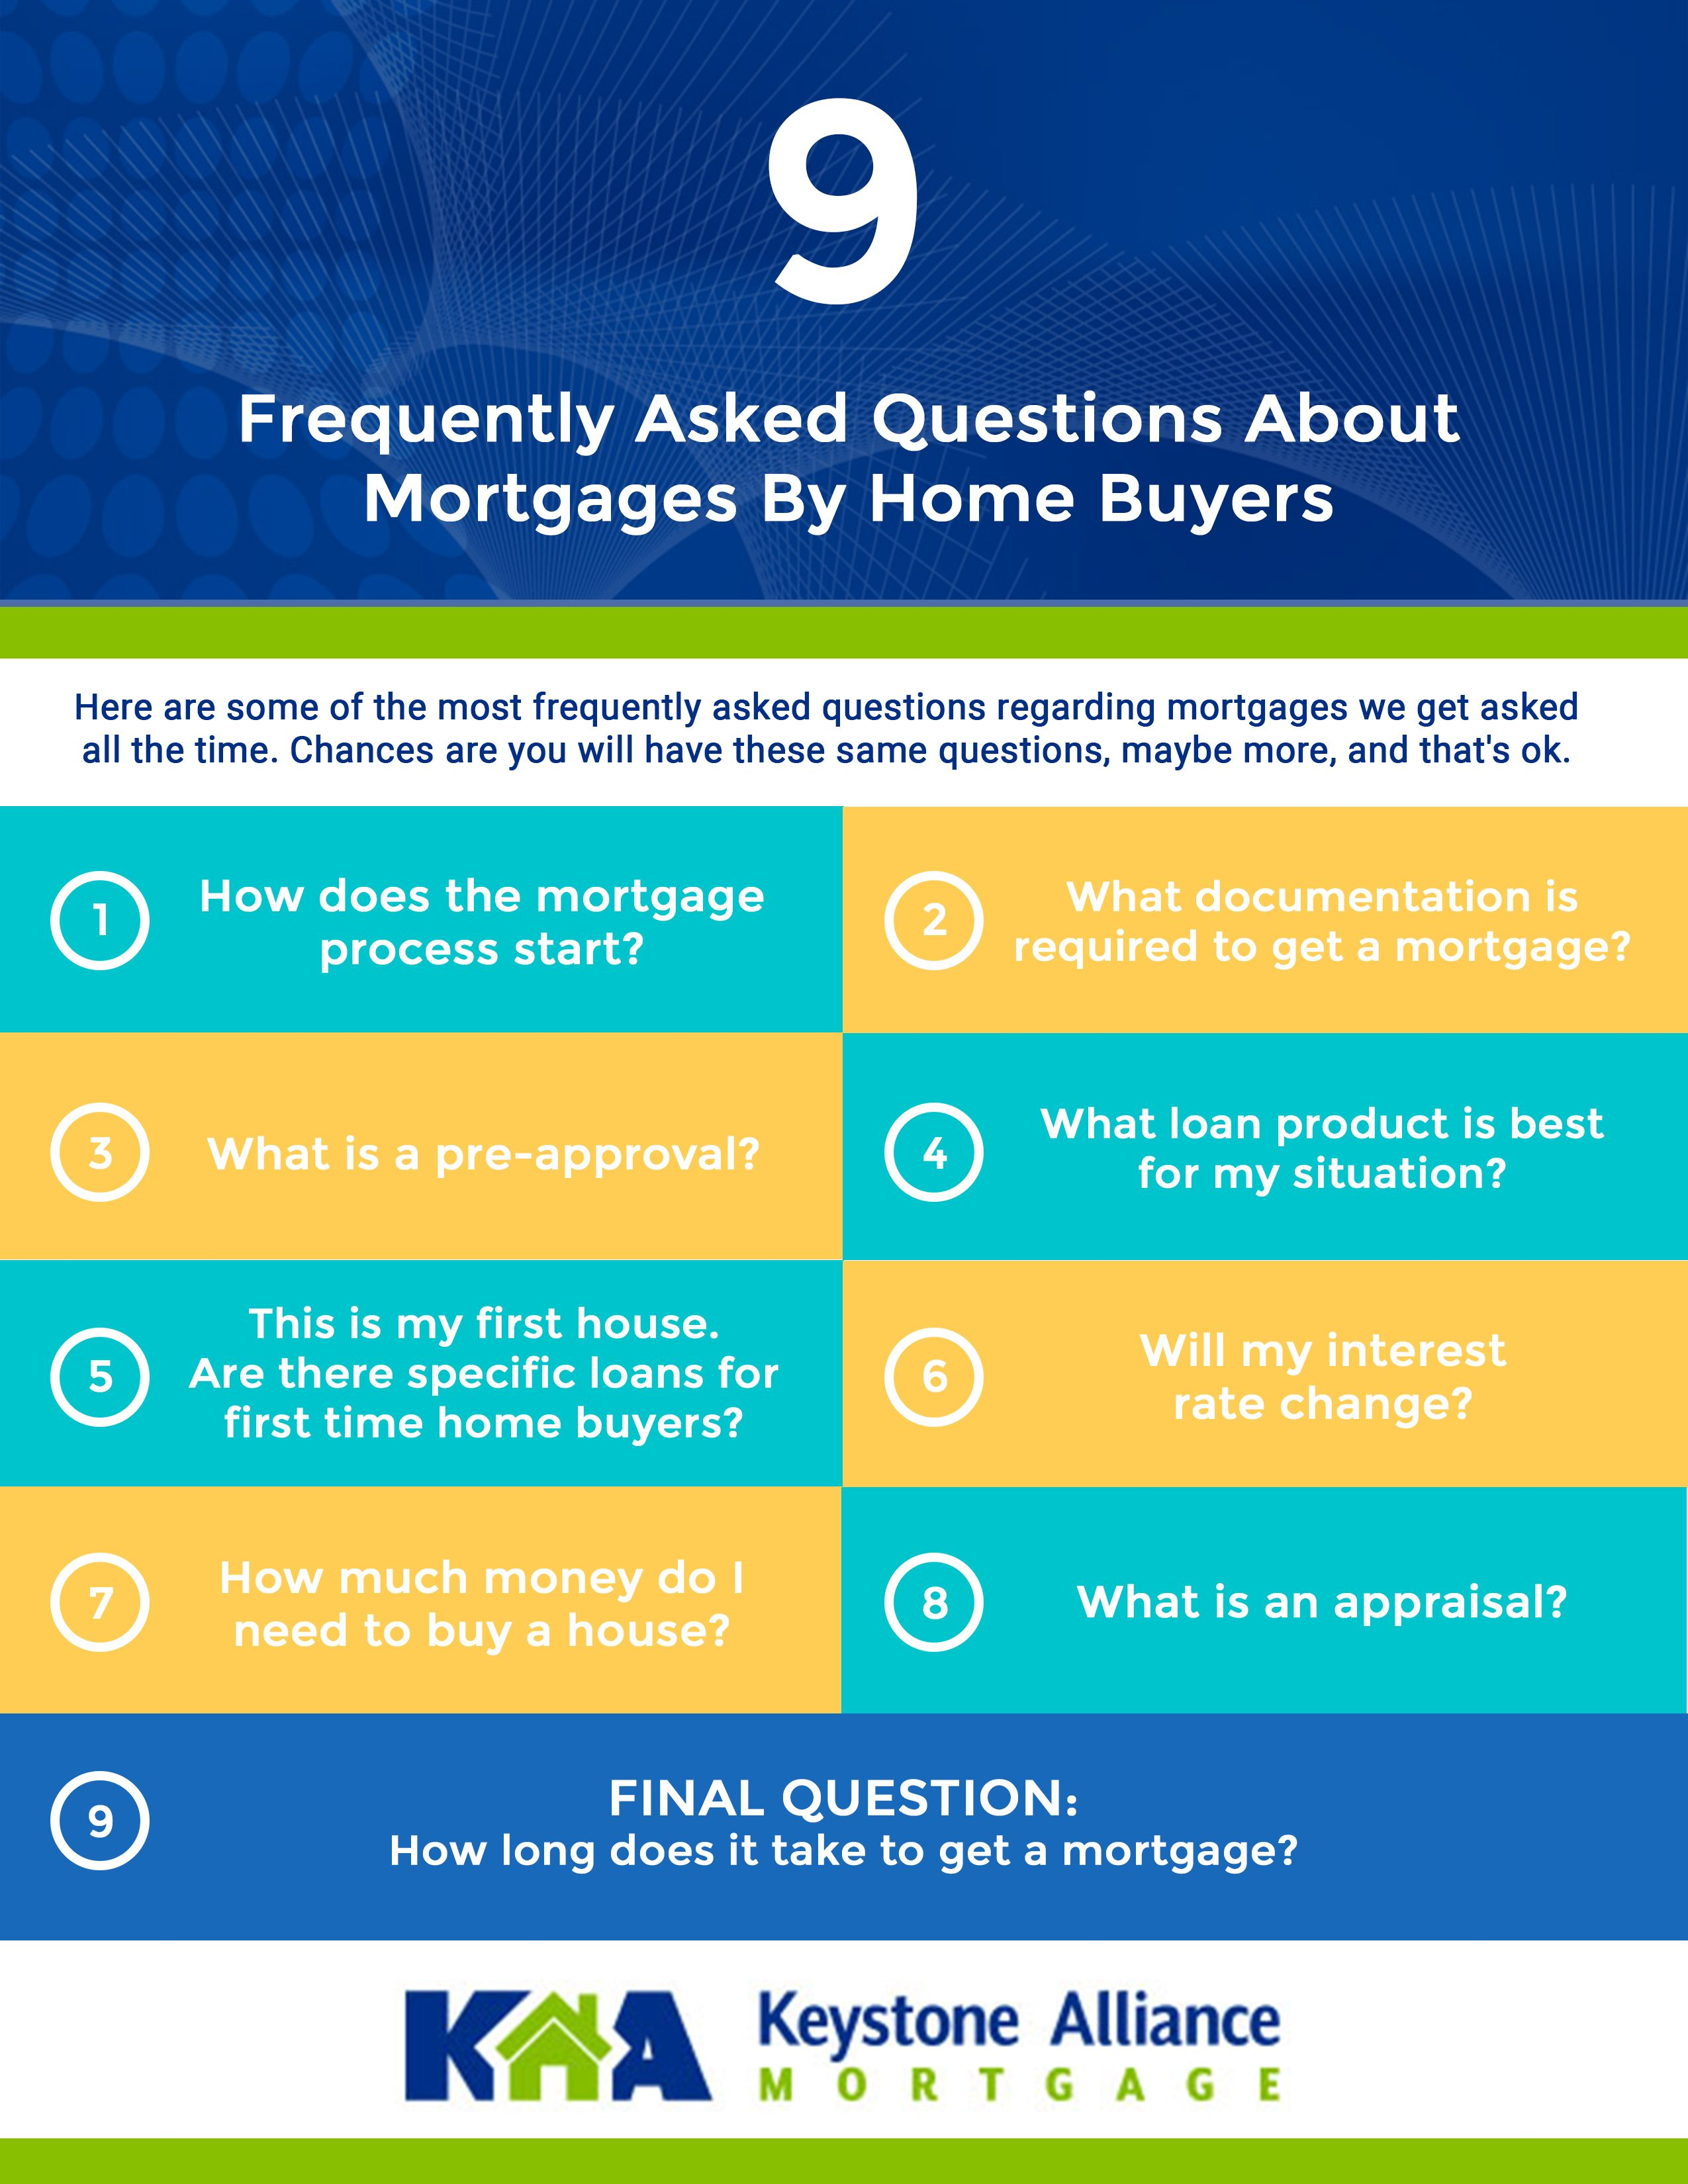 3859041417dce093bf8f6408b31b4cd6 - How Long Does It Take To Get House Loan Approved